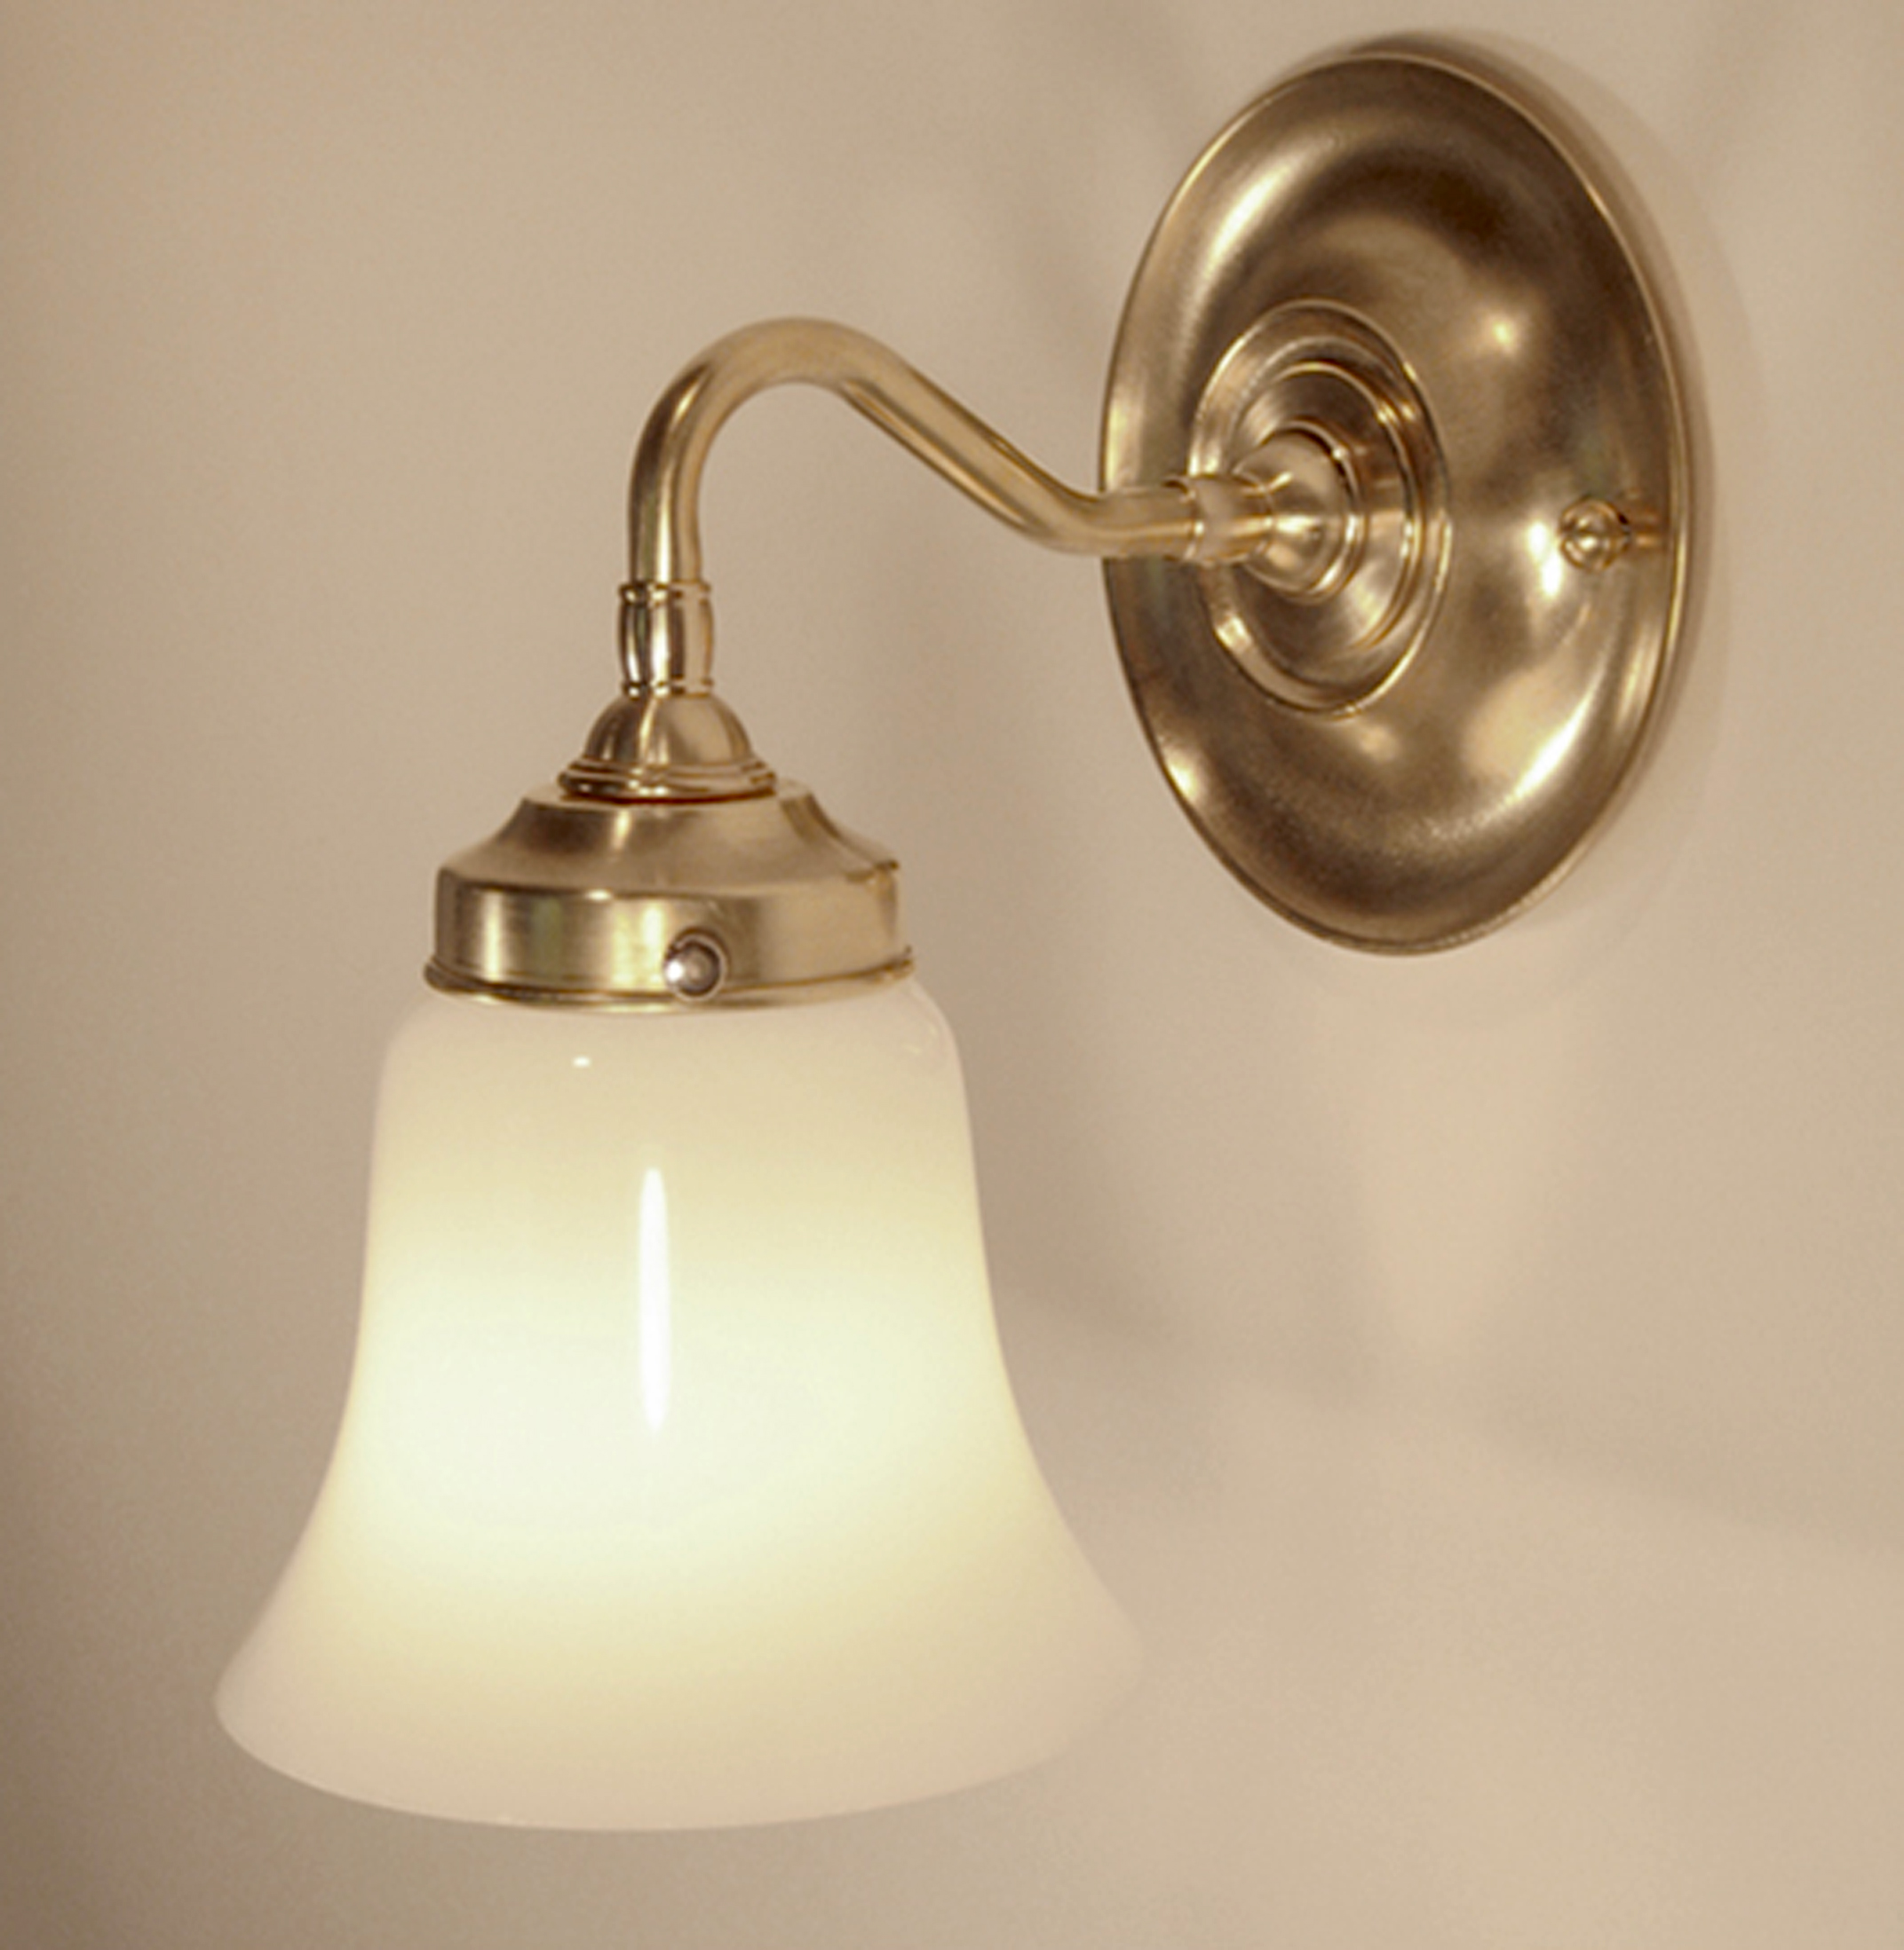 Jameson Sconce (Glass Shade)  Unlacquered hand polished brass / glass shade.